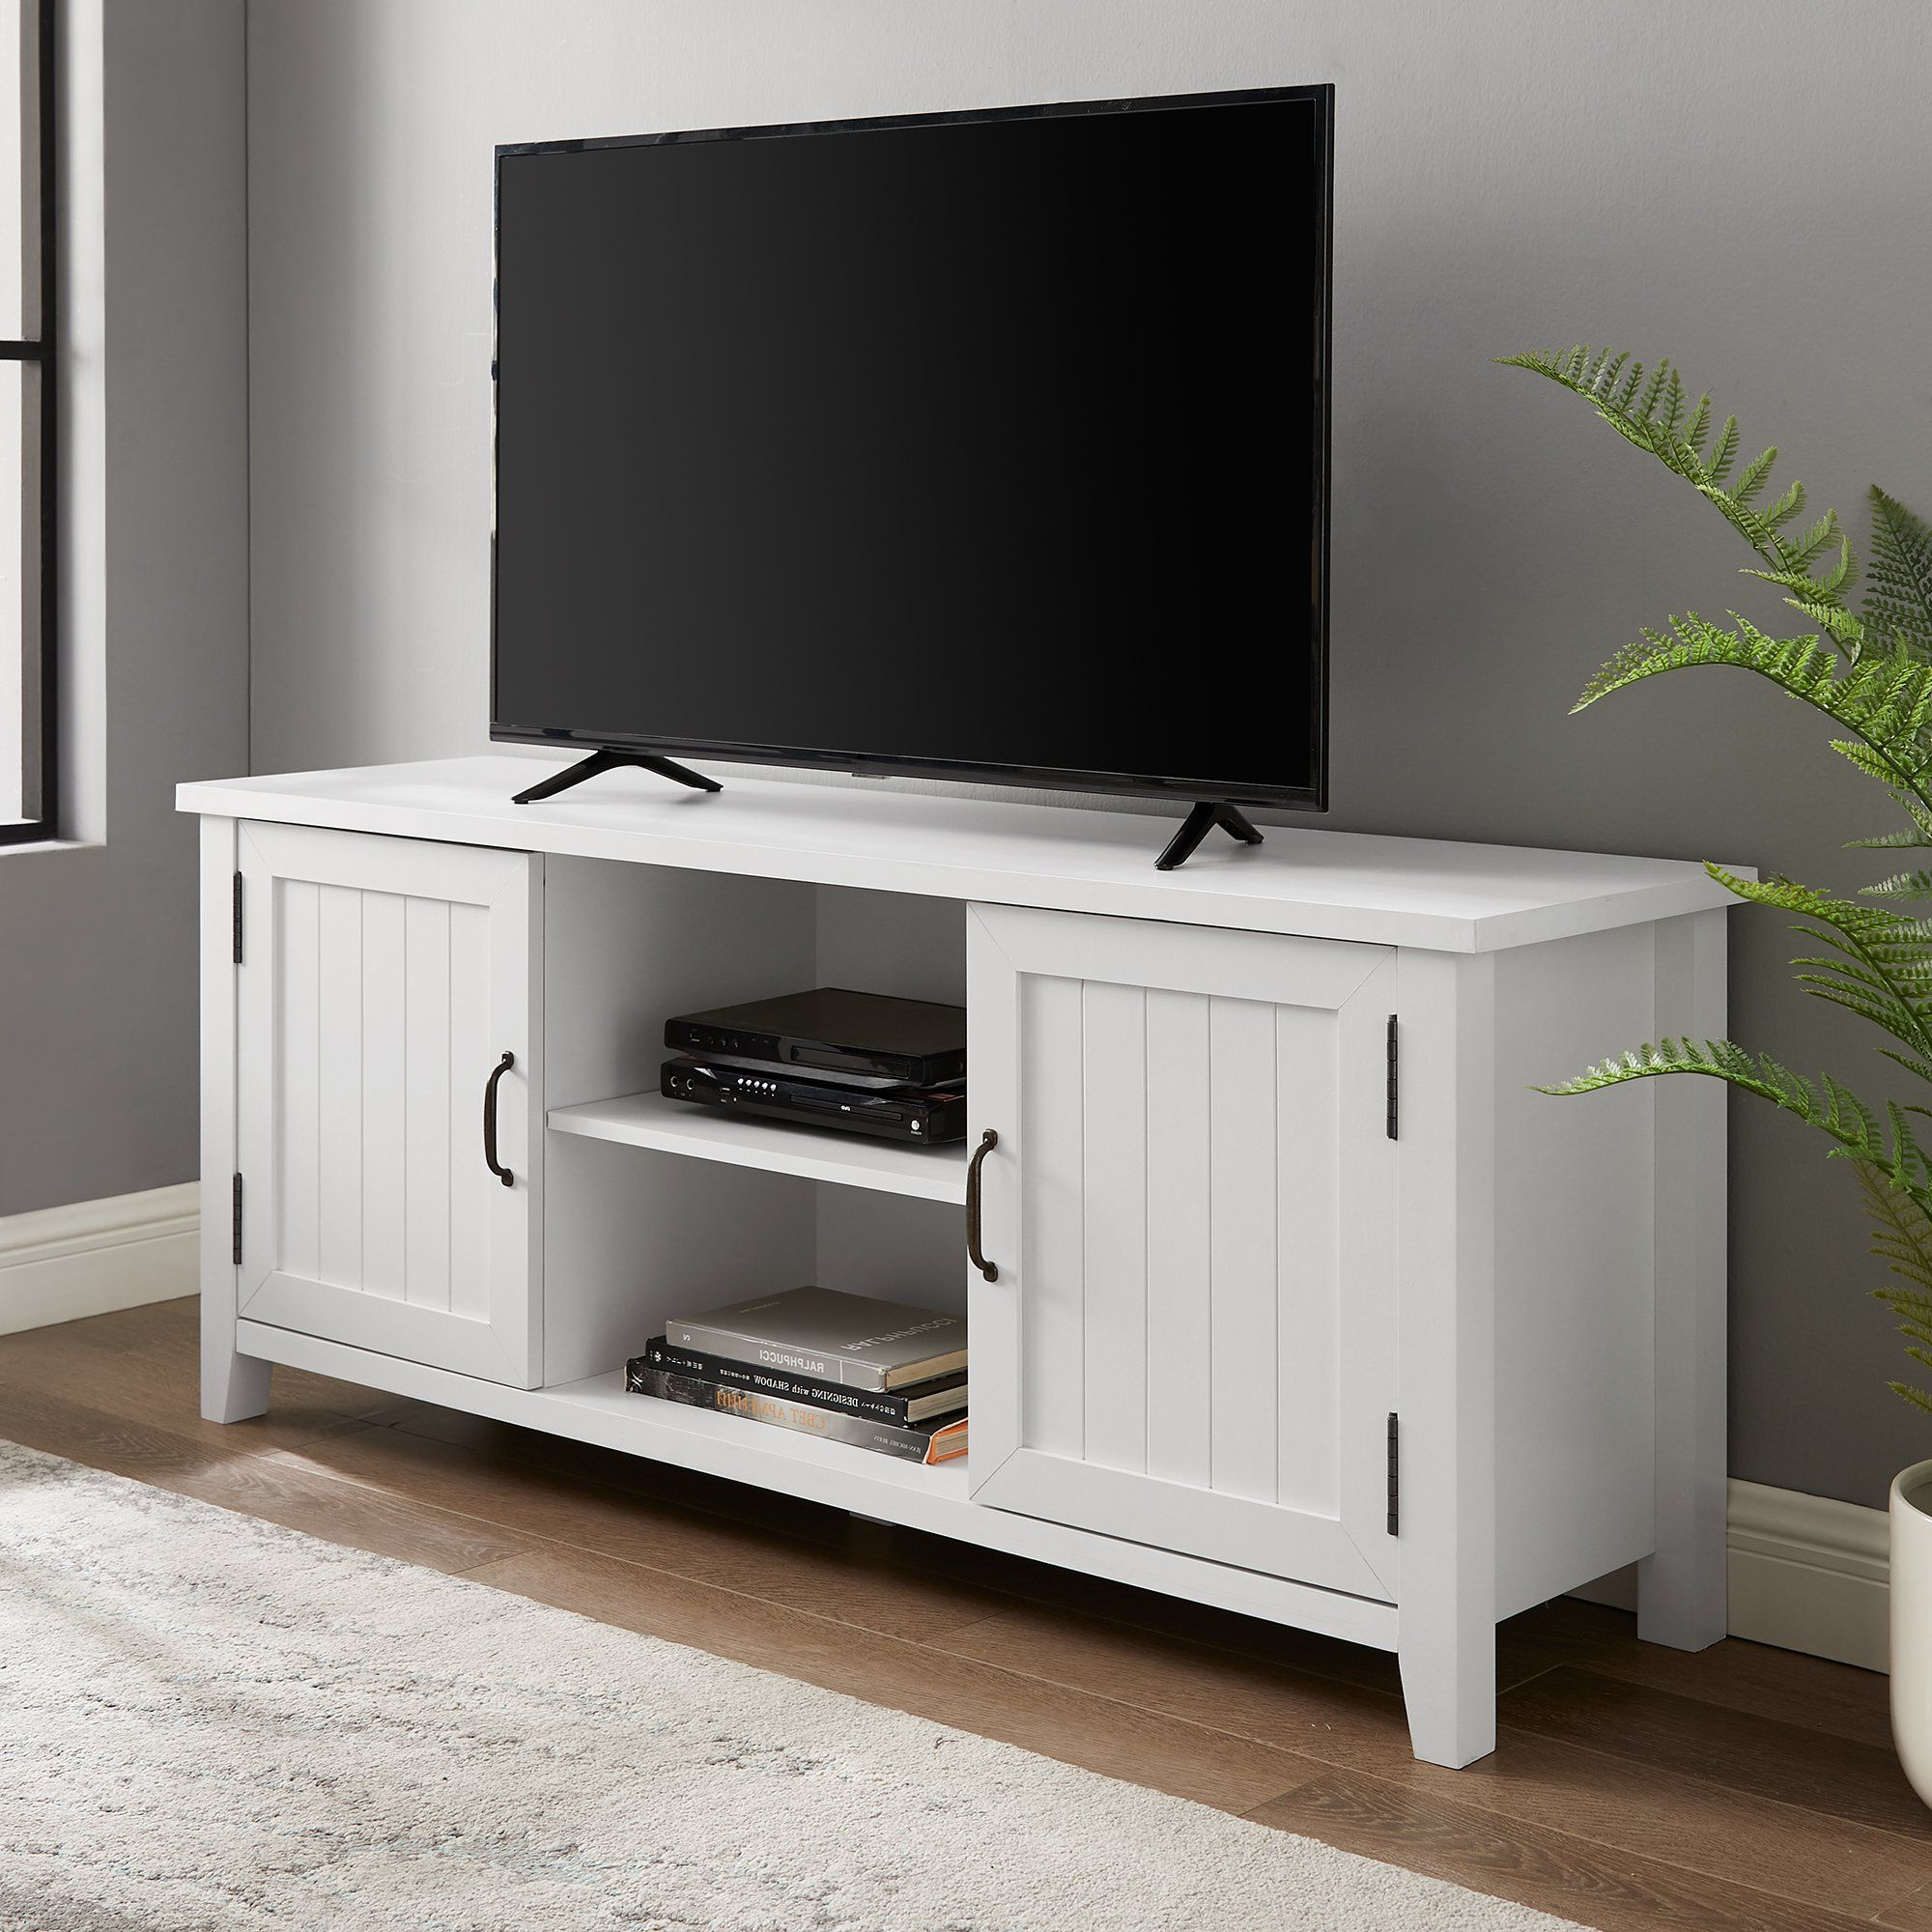 Most Up To Date Solid White 58 Inch Grooved Door Tv Stand – Coastal With Regard To Walker Edison Farmhouse Tv Stands With Storage Cabinet Doors And Shelves (View 5 of 10)